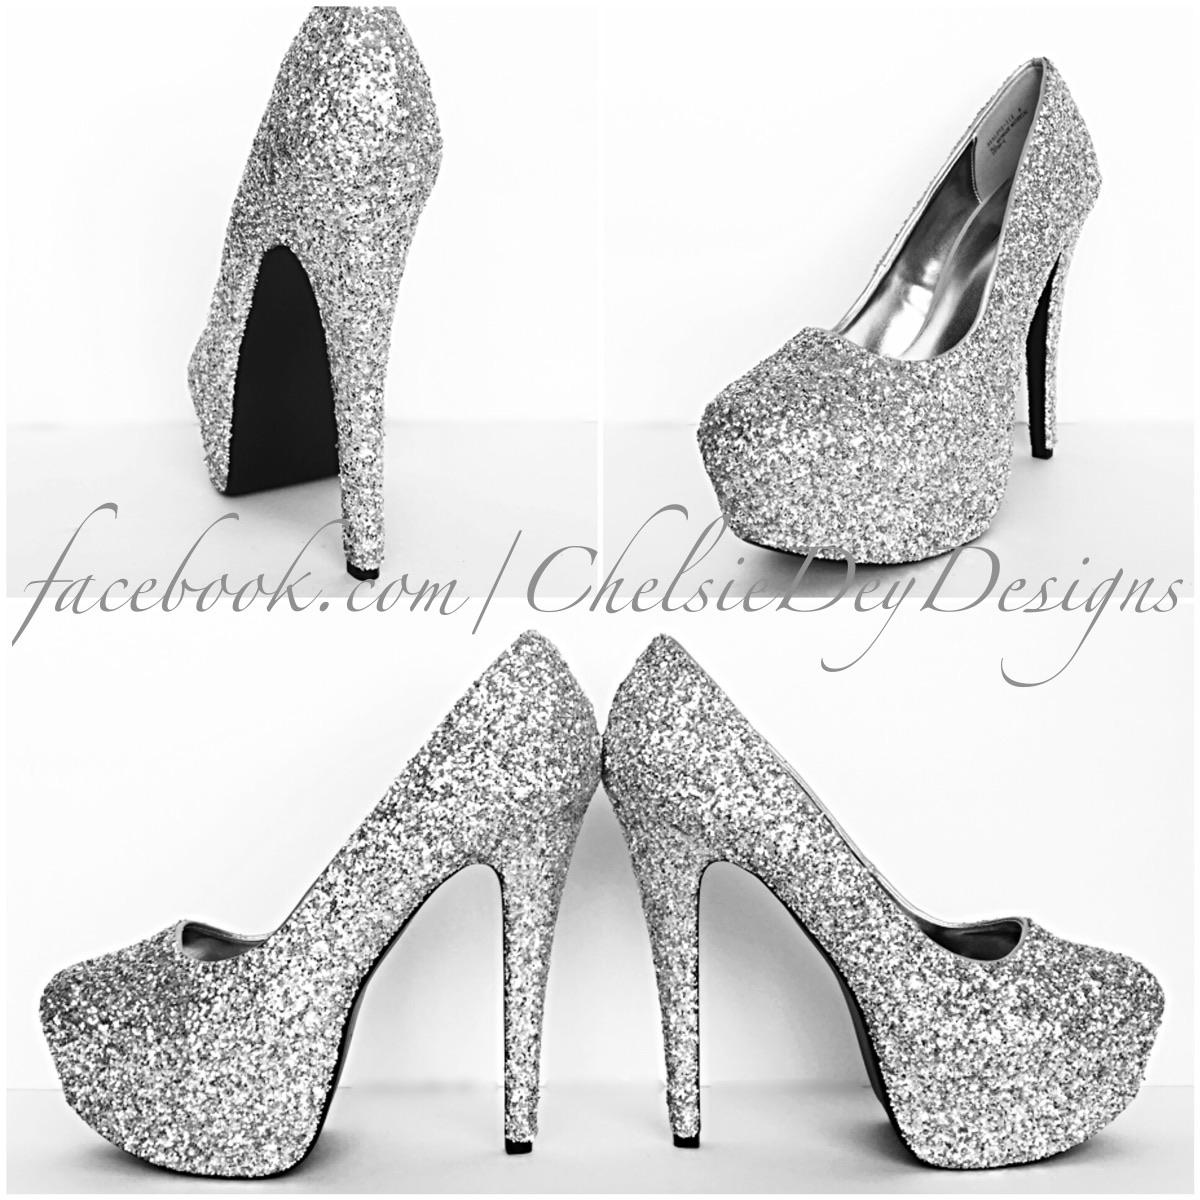 d82fba28fc3c Silver Glitter High Heels, Grey Platform Pumps, Sparkly Prom Shoes on  Storenvy